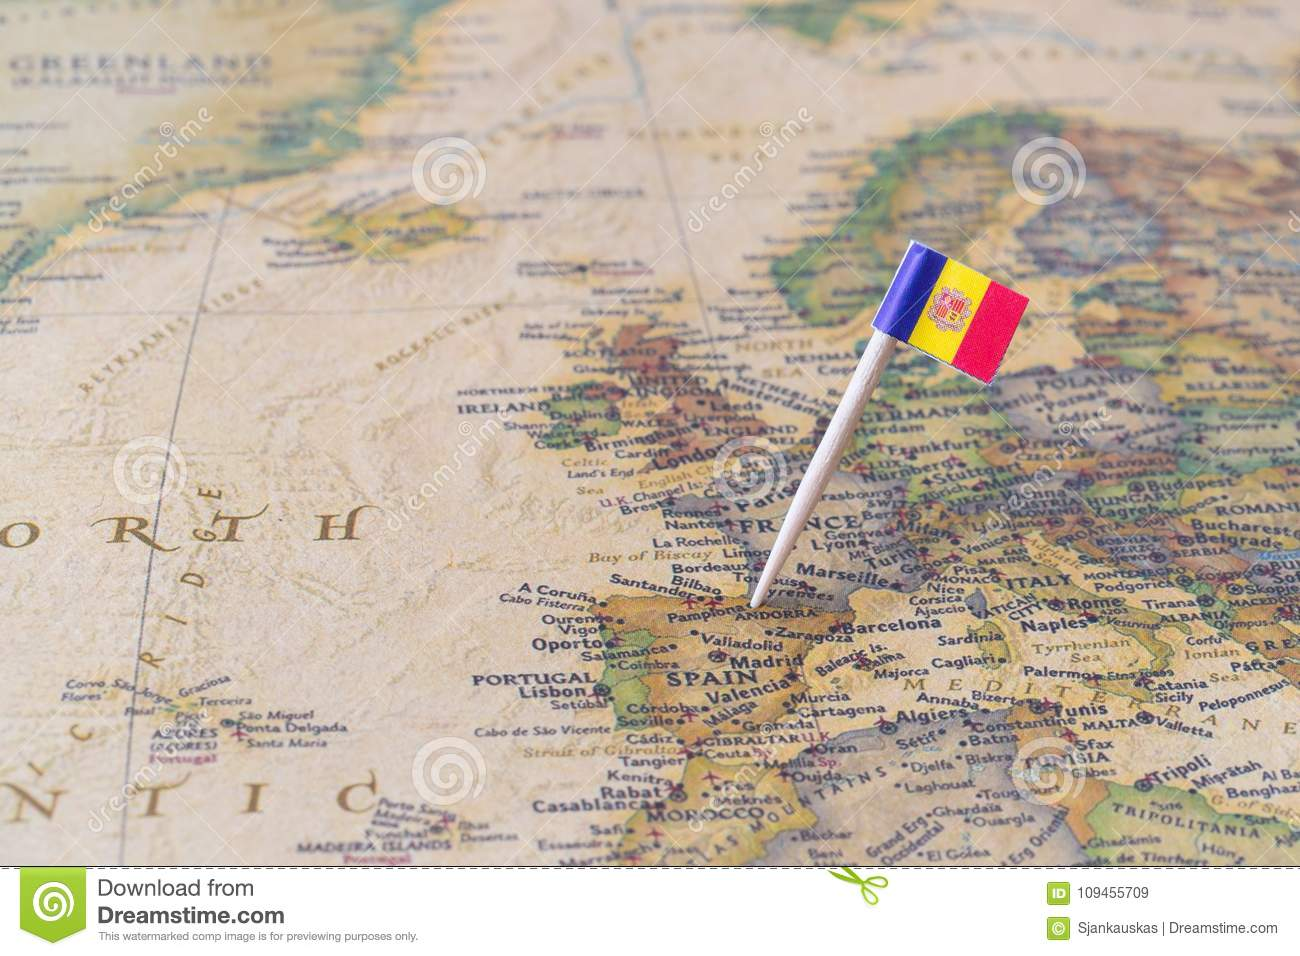 Andorra Map And Flag Pin Stock Image Image Of Capital 109455709